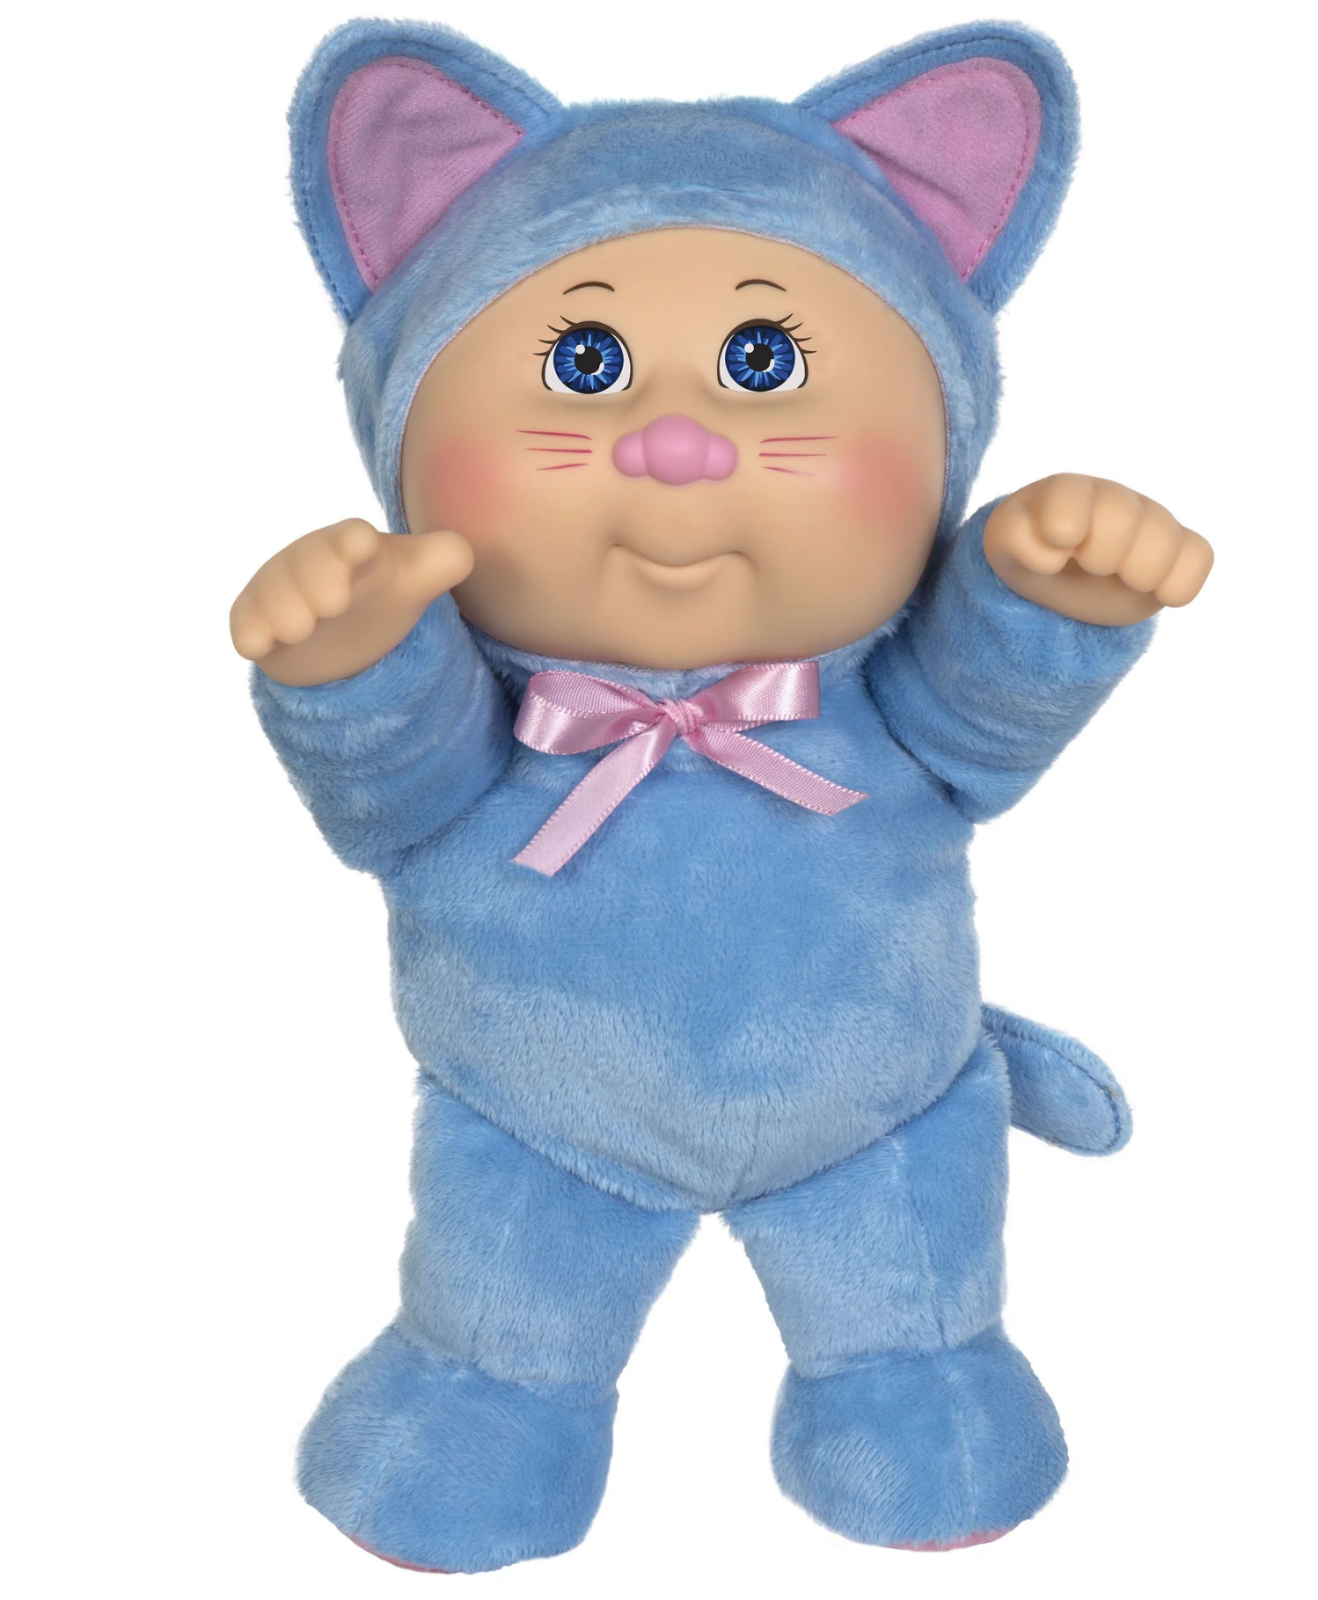 """Cabbage Patch Kids Doll 9"""" Riley Killy Petting Zoo Friends Cutie NEW FS!"""